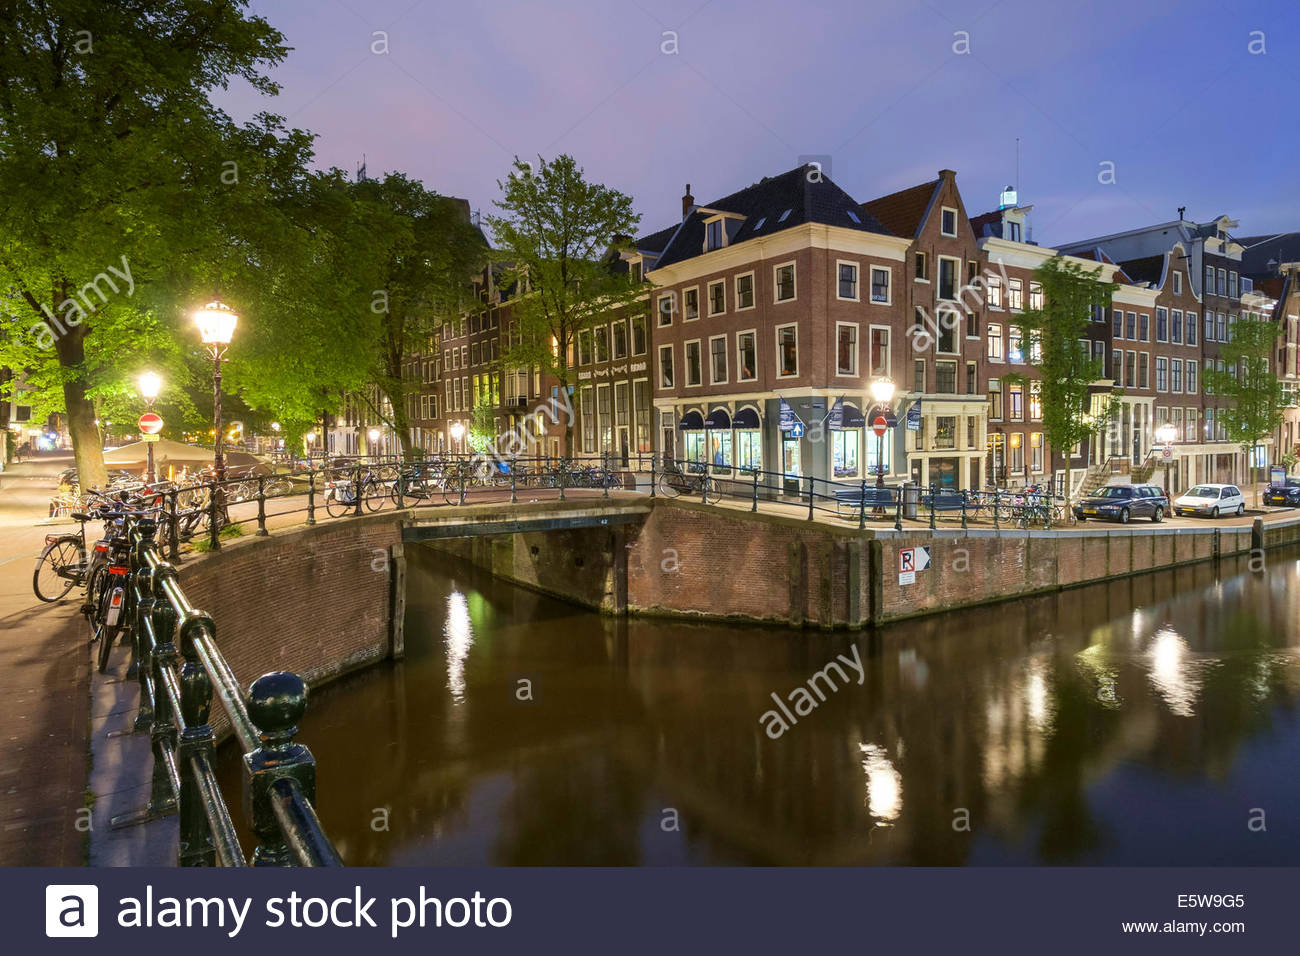 Intersection of Prinsengracht and Leidsegracht canals at night, Amsterdam, North Holland, Netherlands - Stock Image